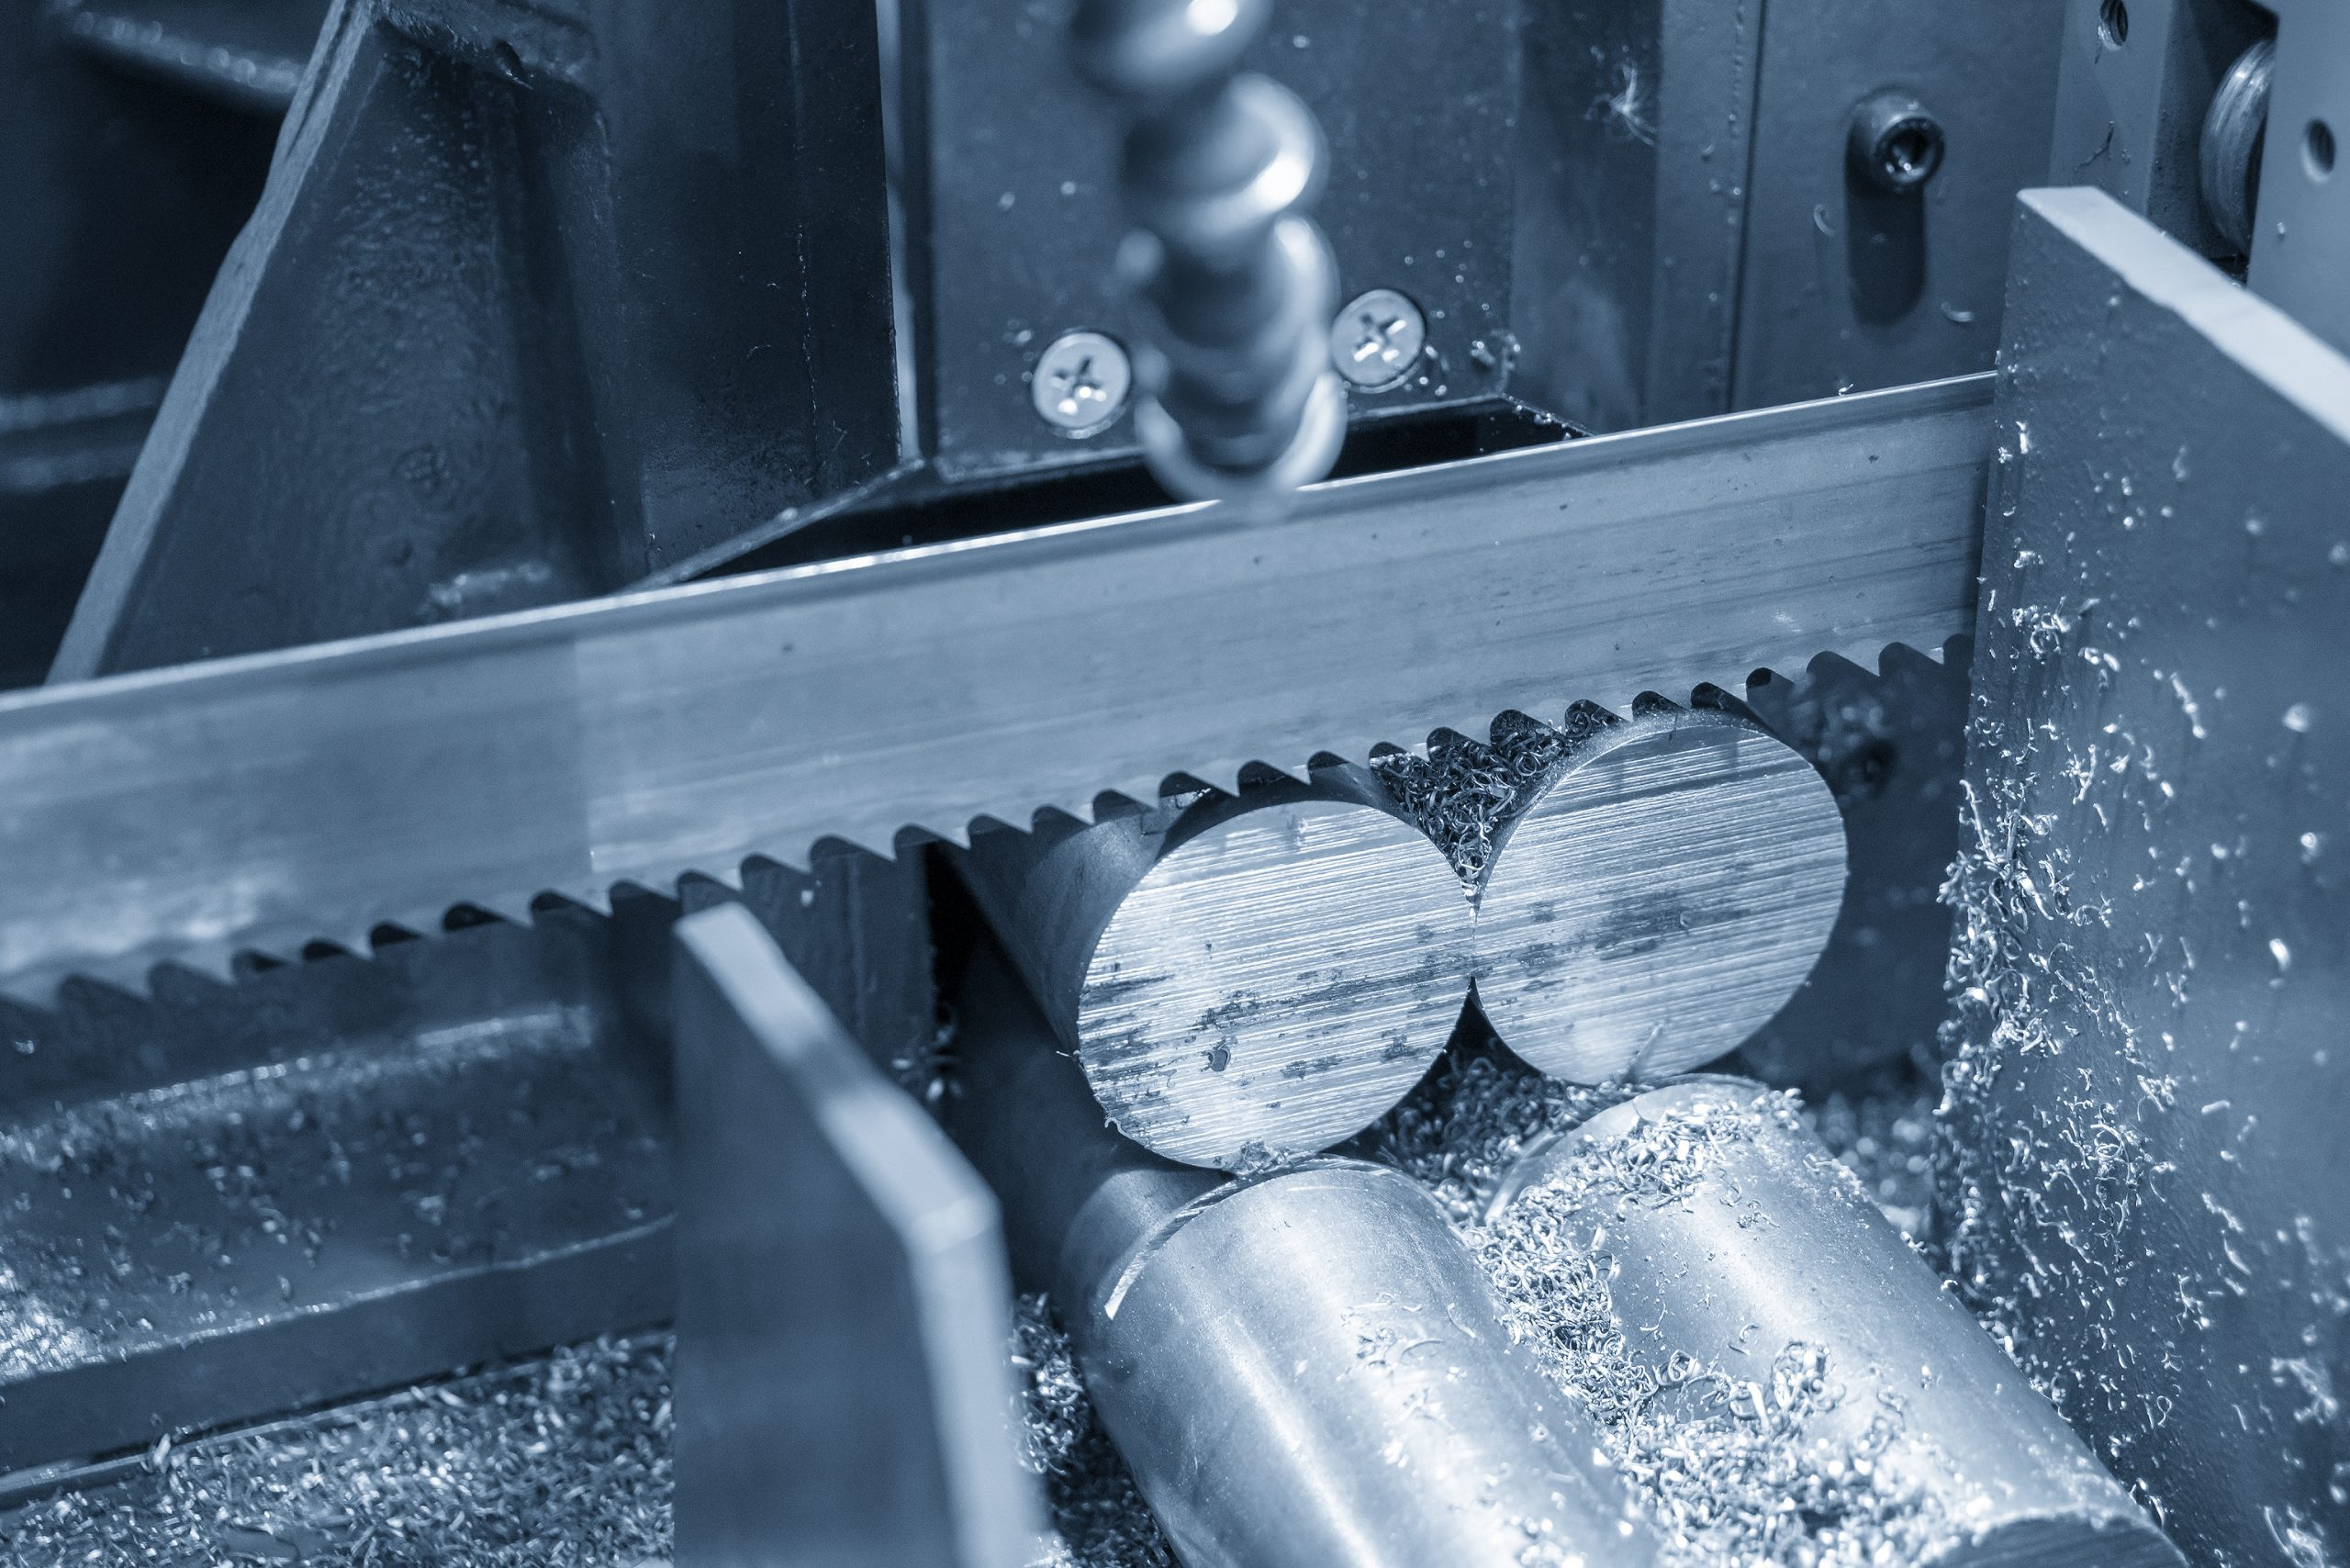 The  band saw machine cutting raw metals rods .The industrial sawing machine cutting the material rod.